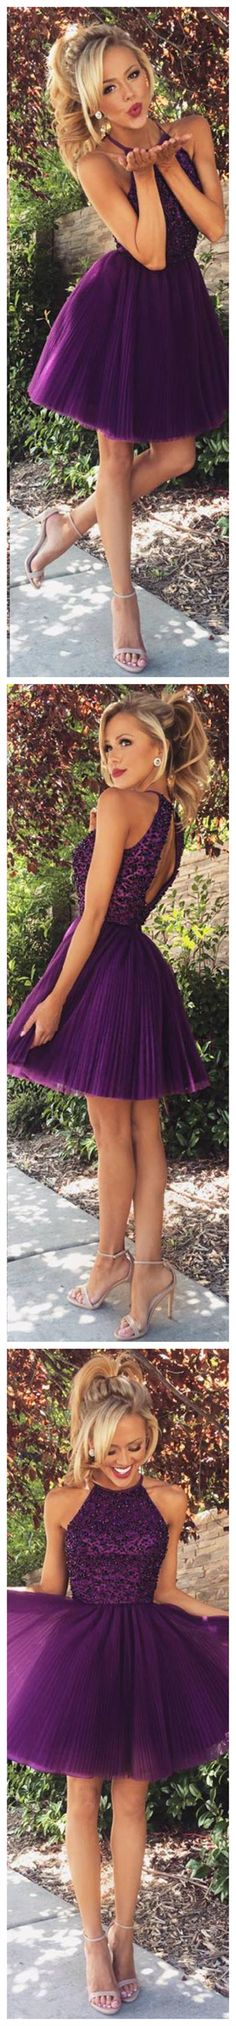 Cute, purple dress